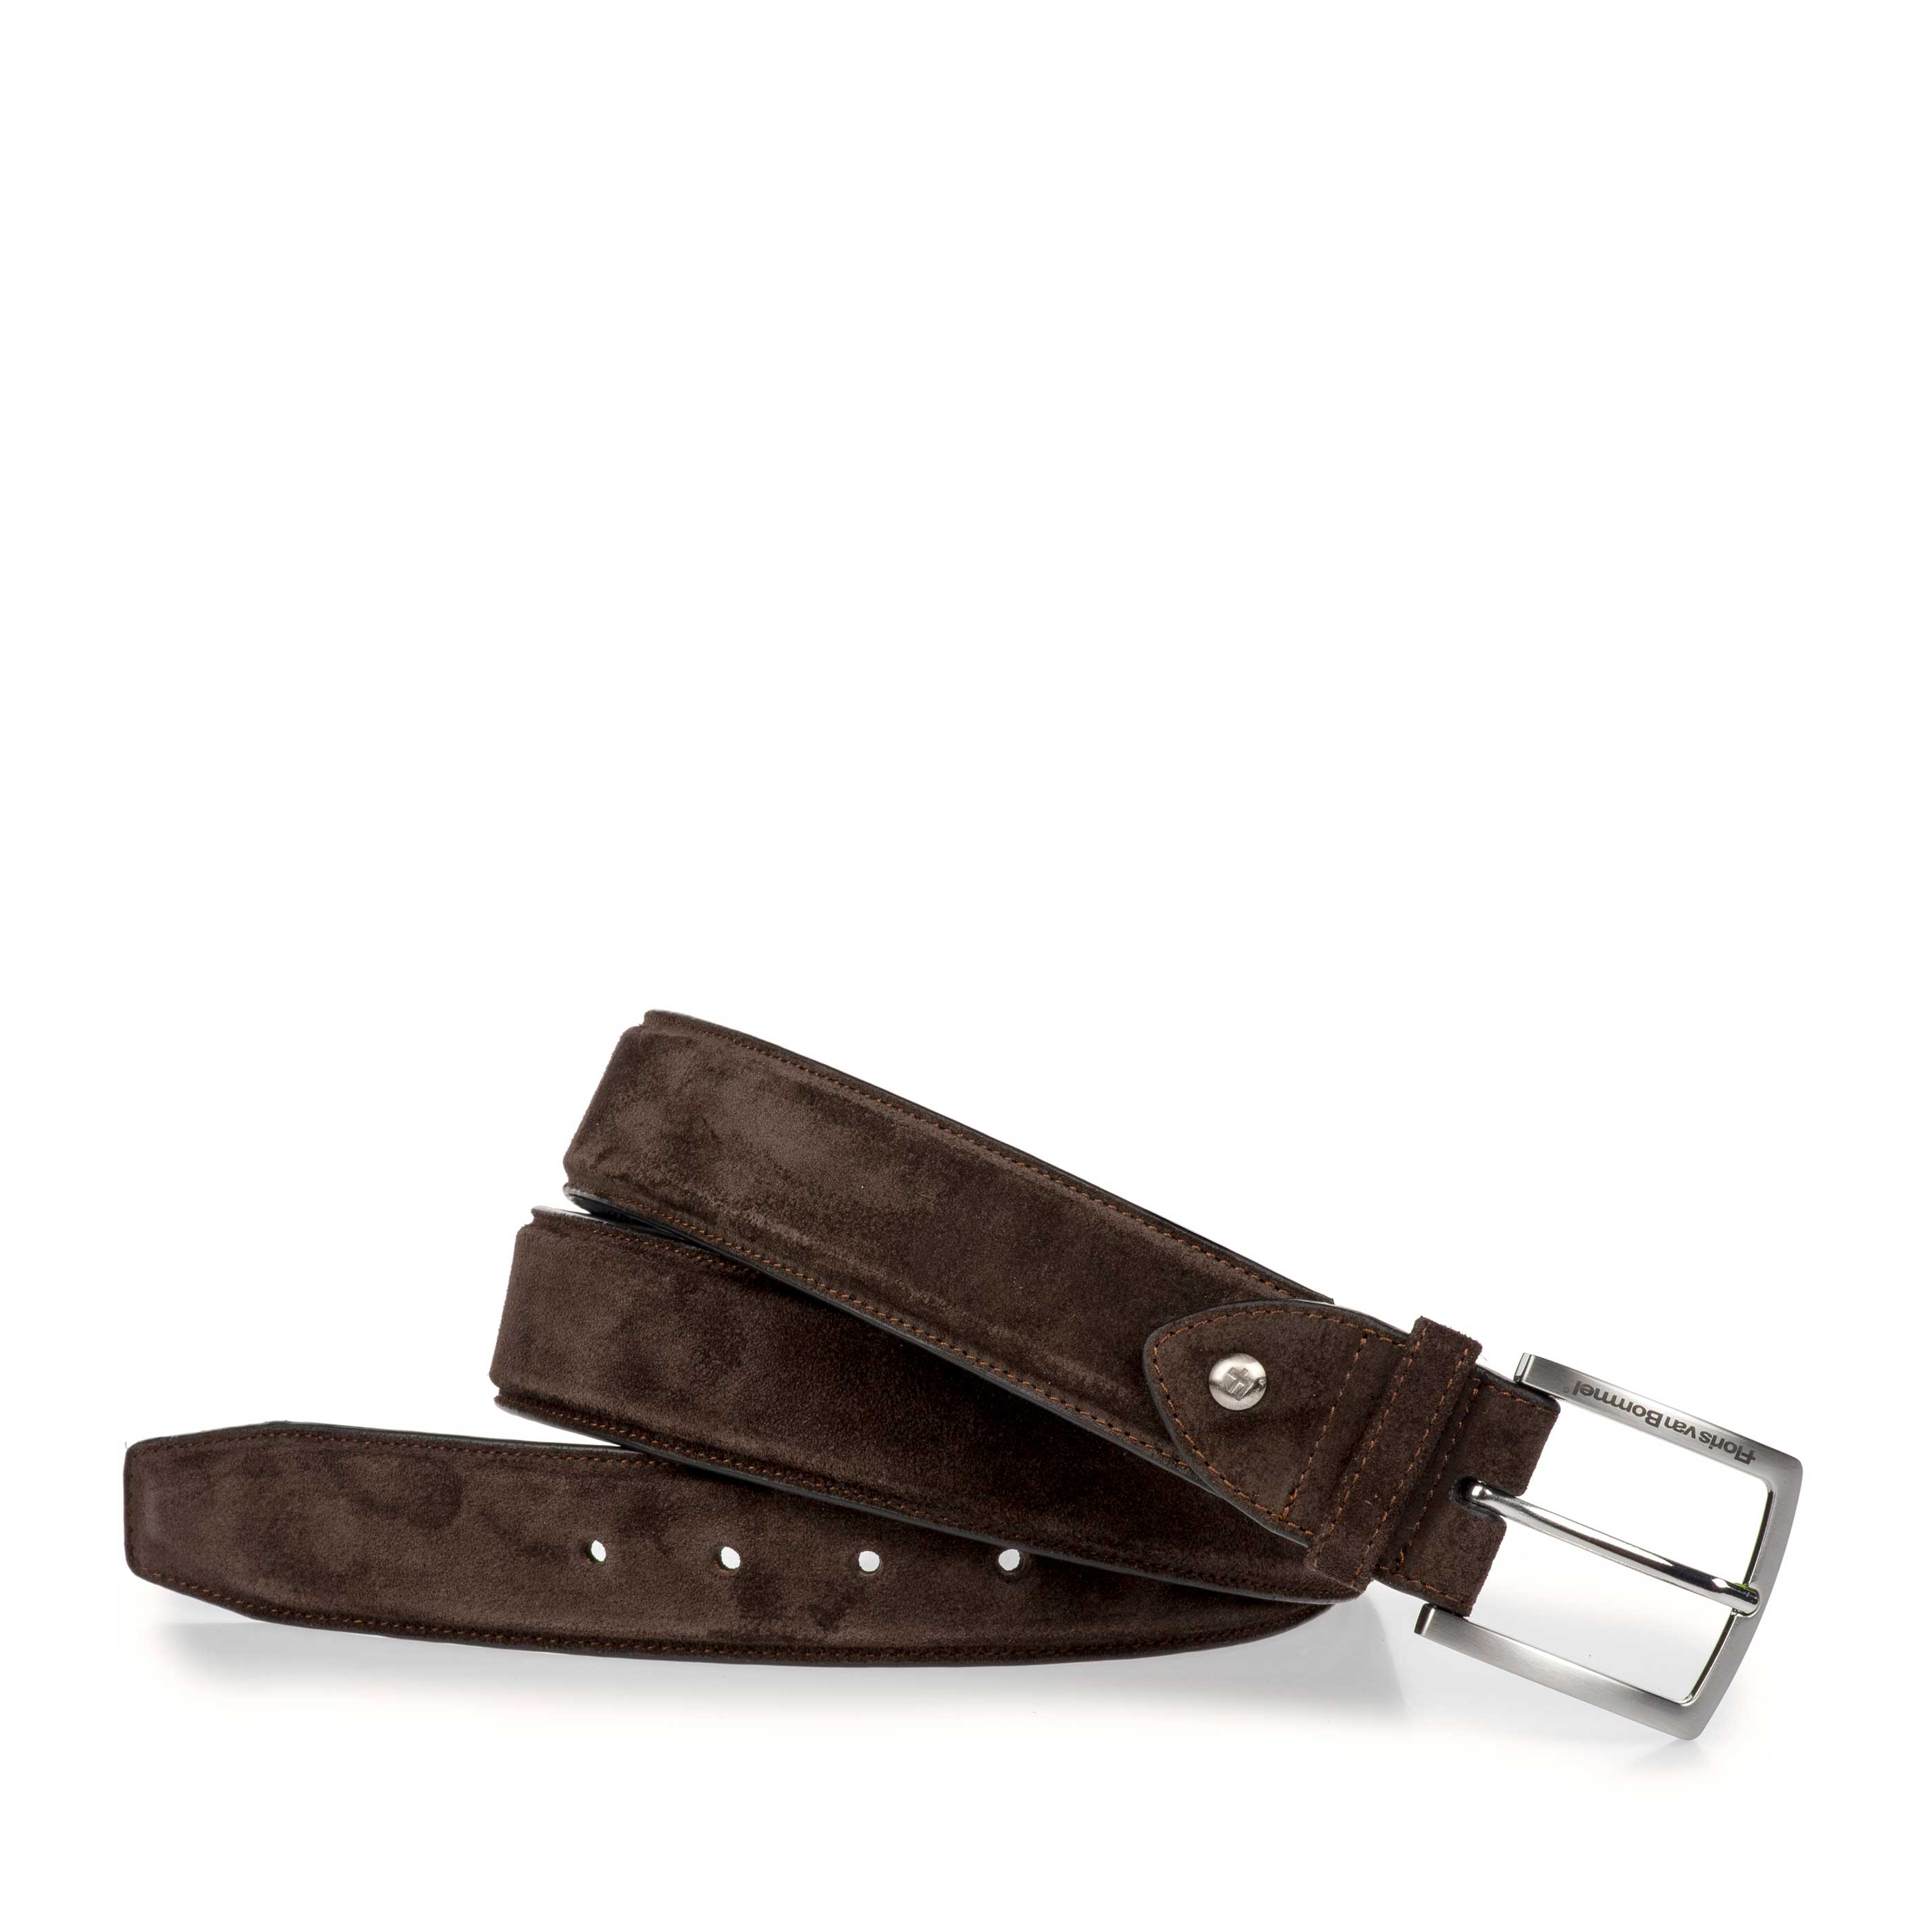 75189/12 - Brown suede leather belt